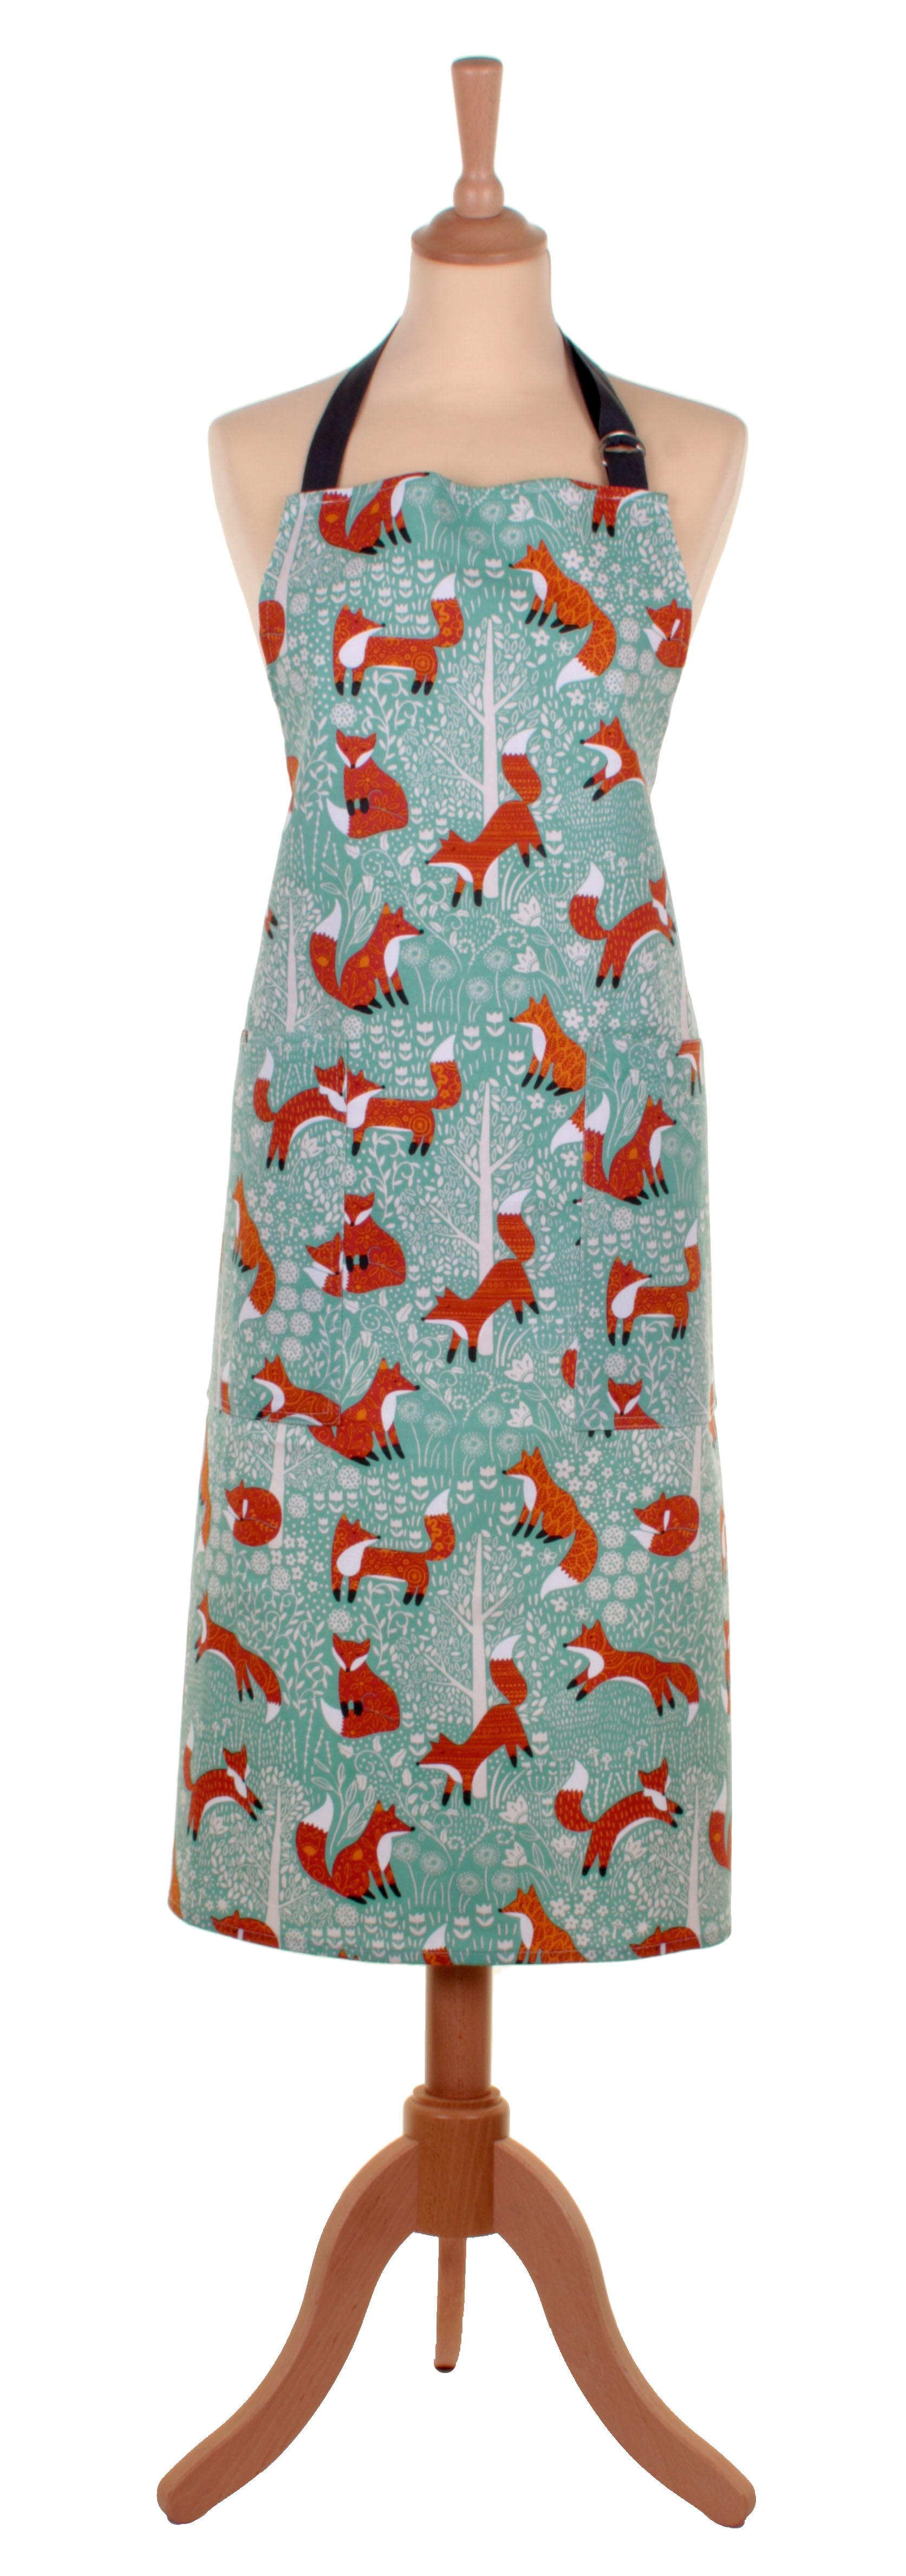 Foraging Fox cotton apron